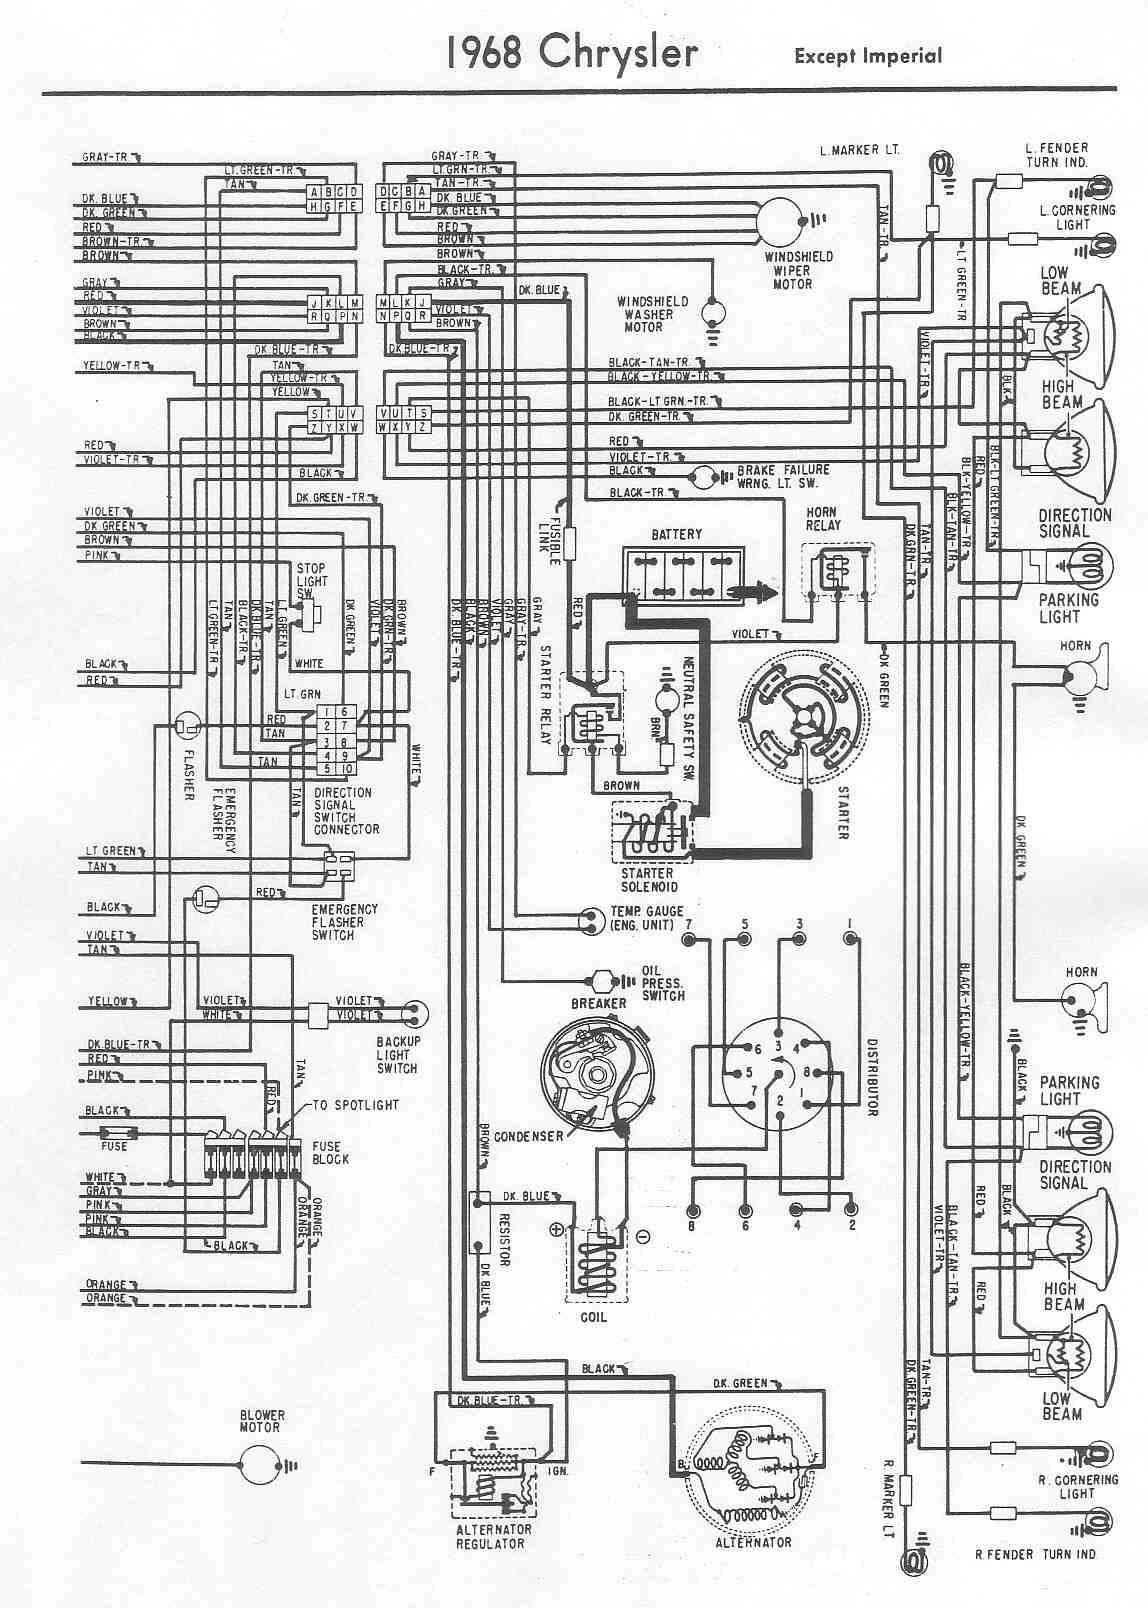 Chrysler 300 Headlight Switch Wiring Diagram Schematics 1968 Mustang 1966 Engine For Light Rh Prestonfarmmotors Co Dodge 57 Chevy